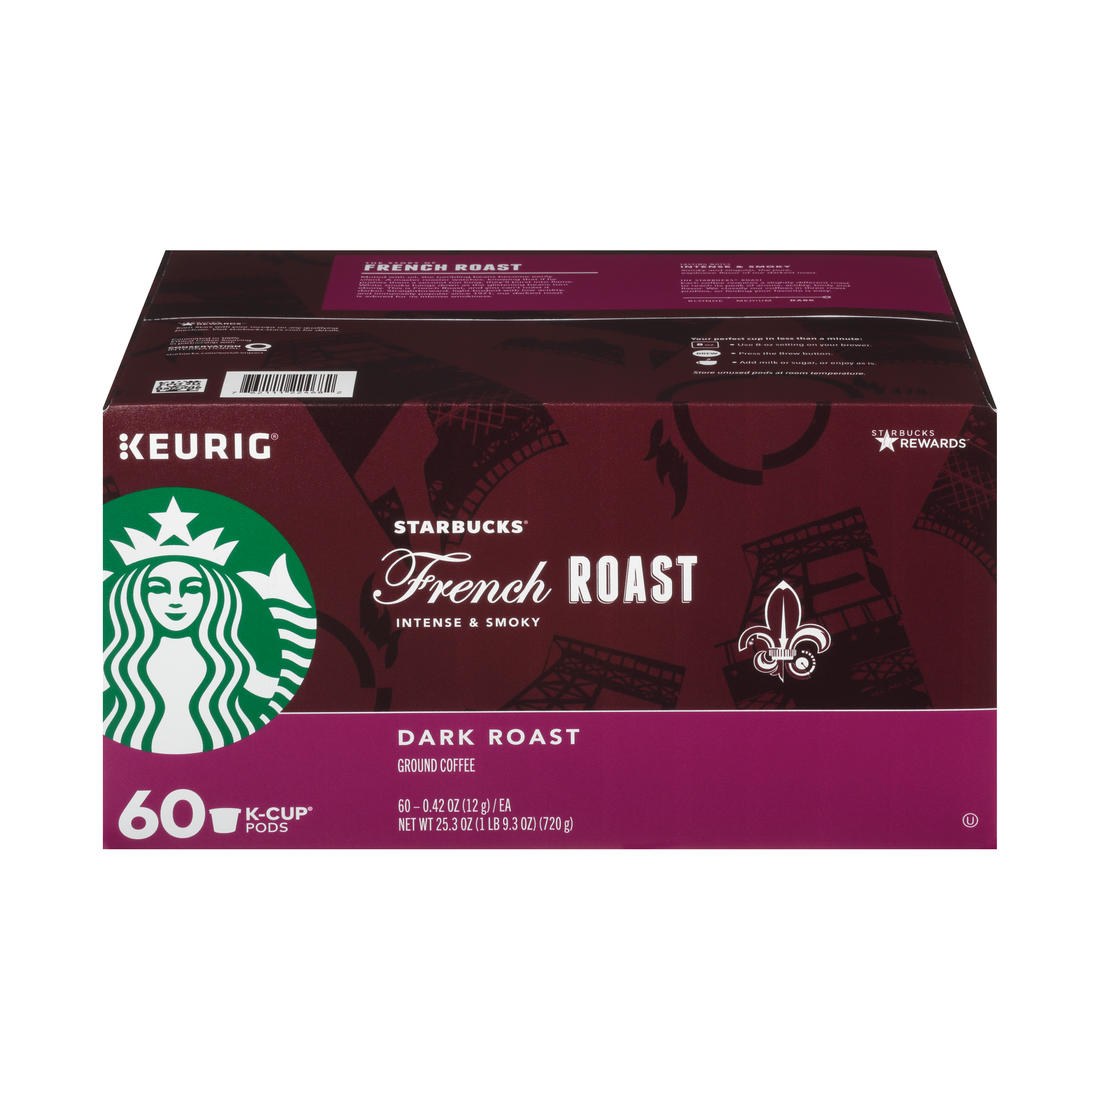 image regarding Starbucks K Cups Printable Coupons called Starbucks French Roast K-Cup Pods, 60 ct.